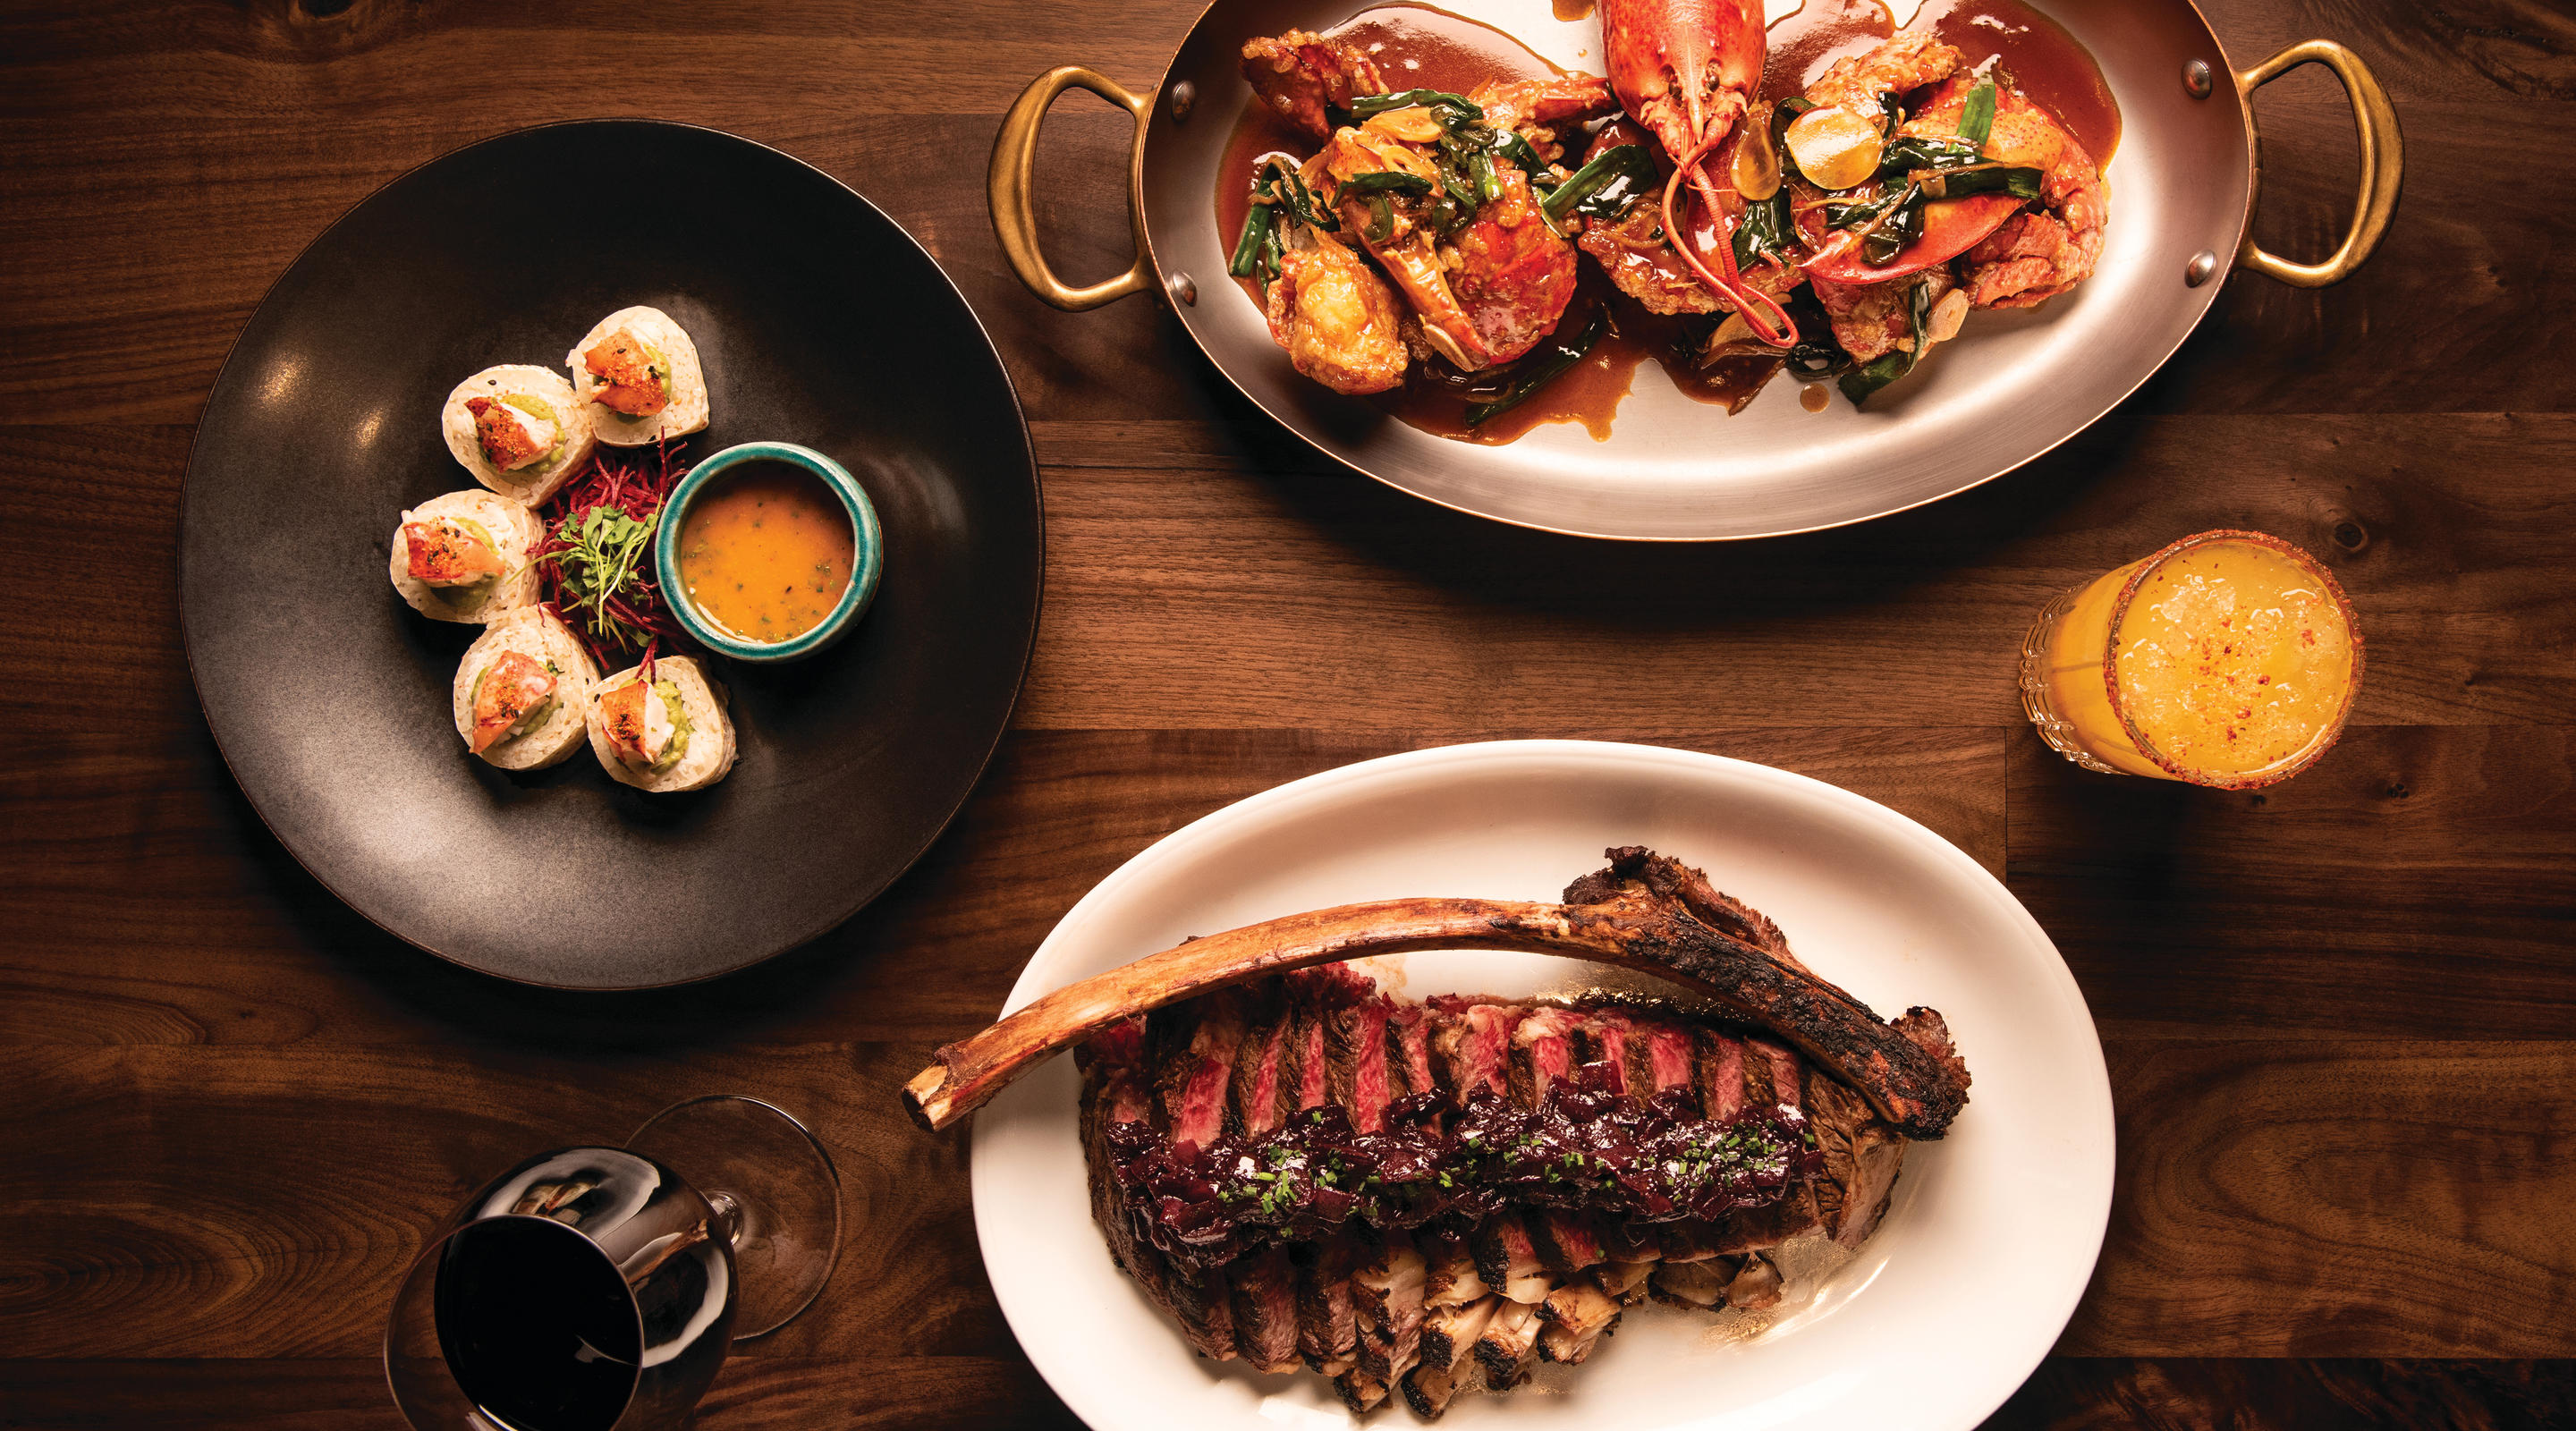 Surf and turf with a Tomahawk steak and a lobster tail.